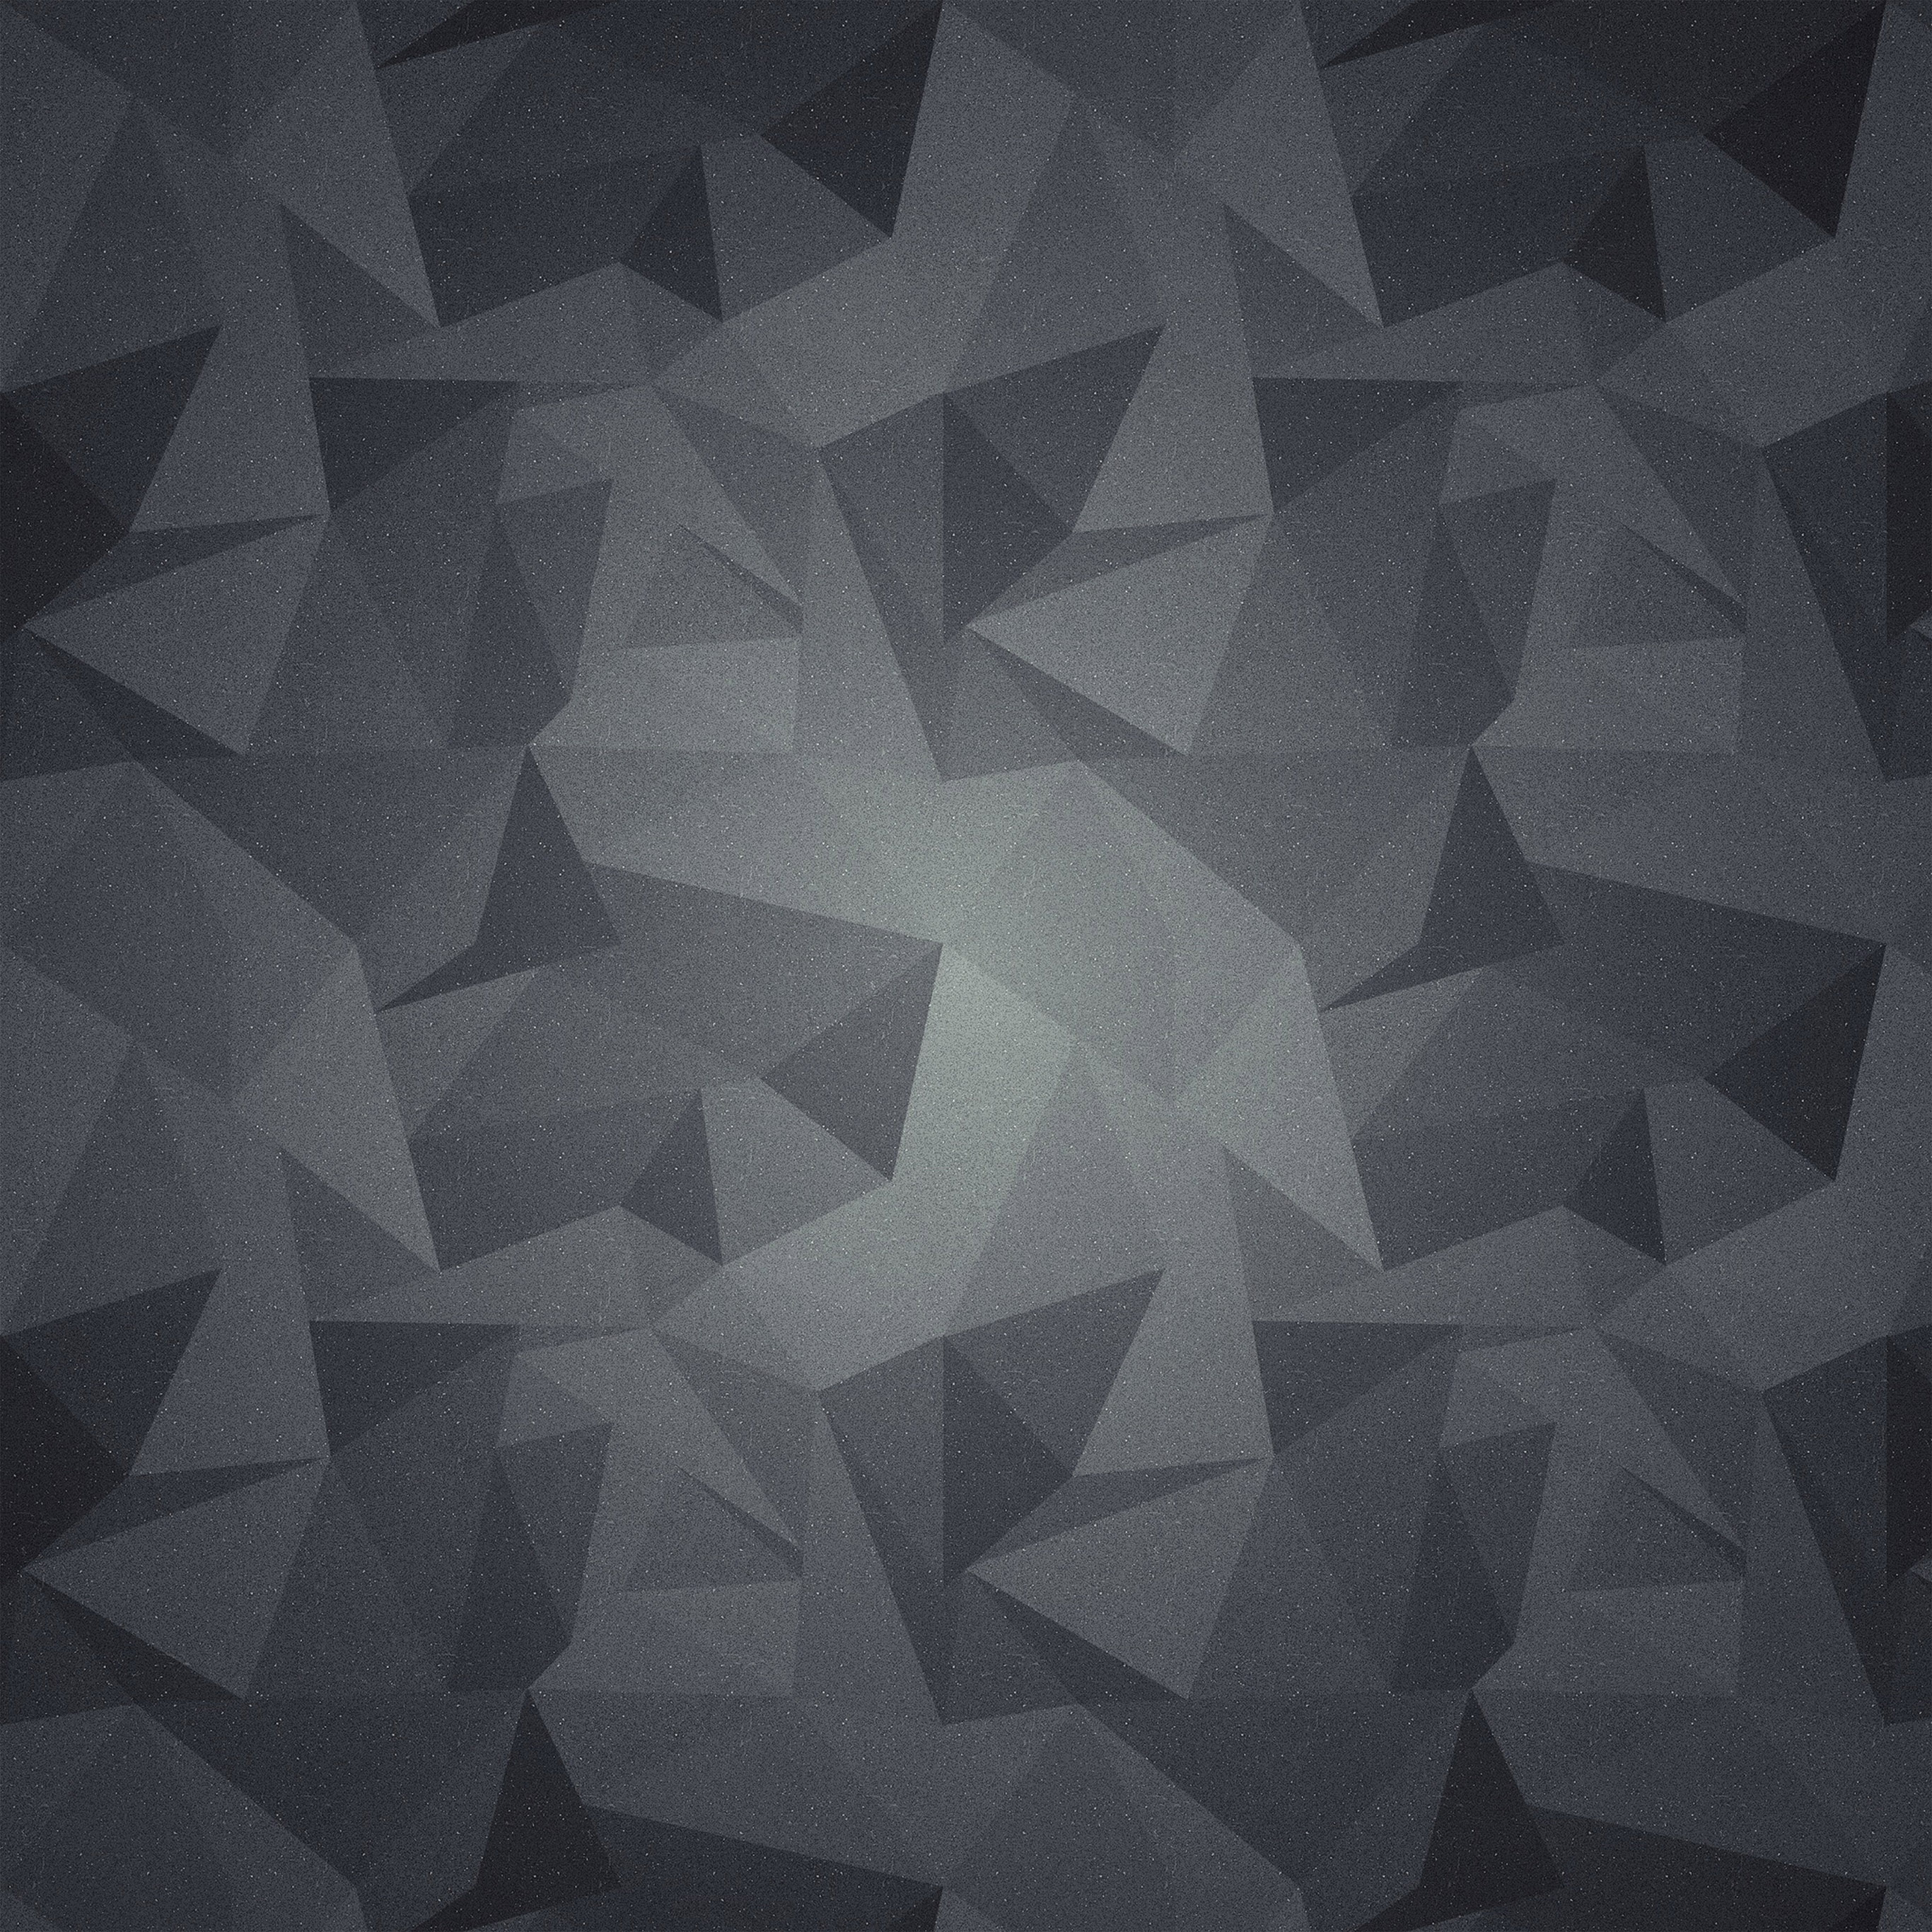 Fall Autumn Wallpaper Wallpapers Of The Week Geometric Patterns